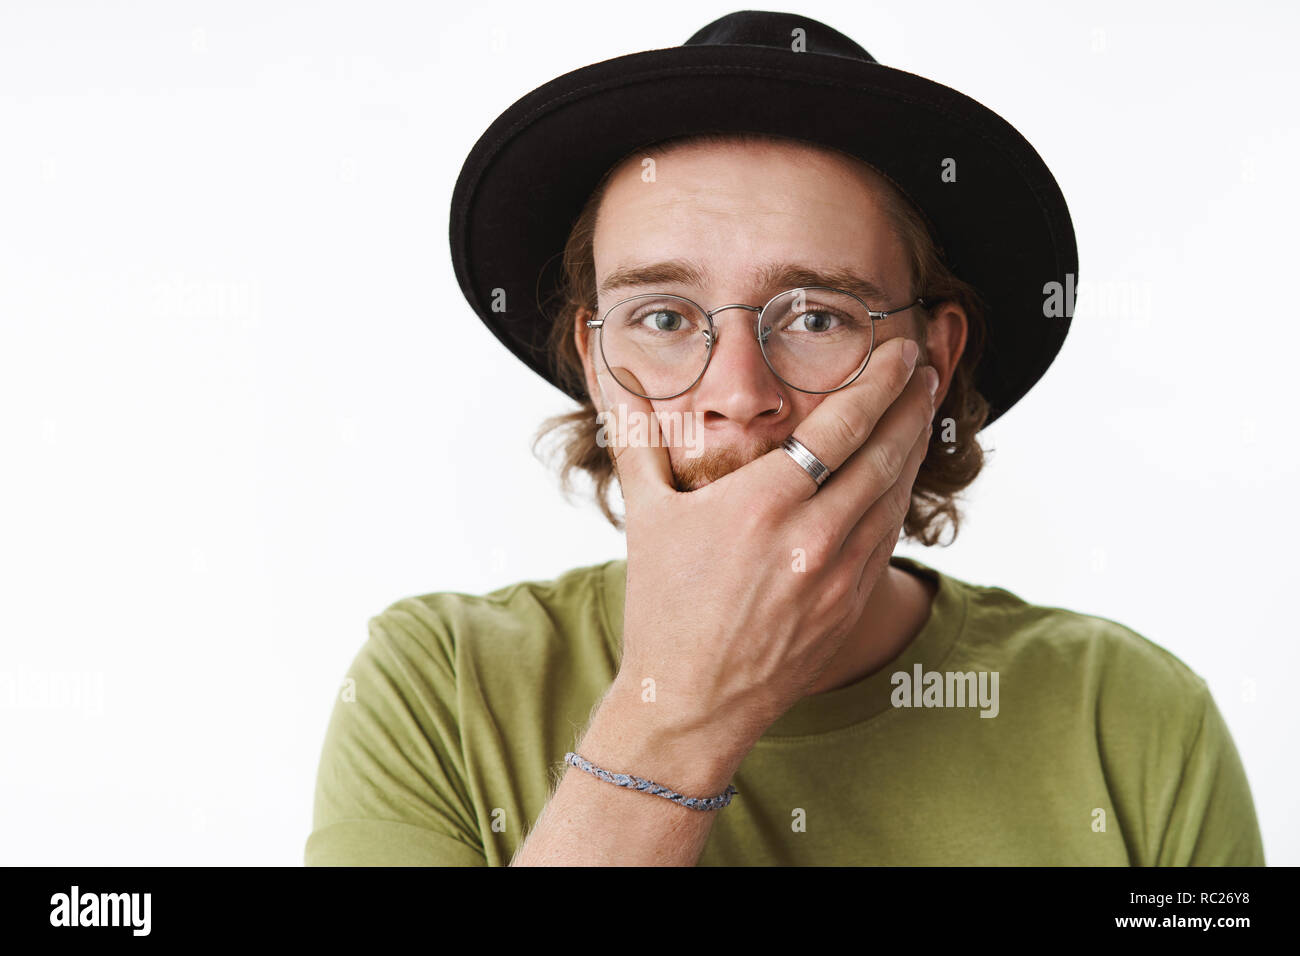 Gosh what have I done. Portrait of stunned shocked guy feeling regret holding hand on mouth looking uneasy and anxious as making mistake standing unaware how solve troublesome situation - Stock Image